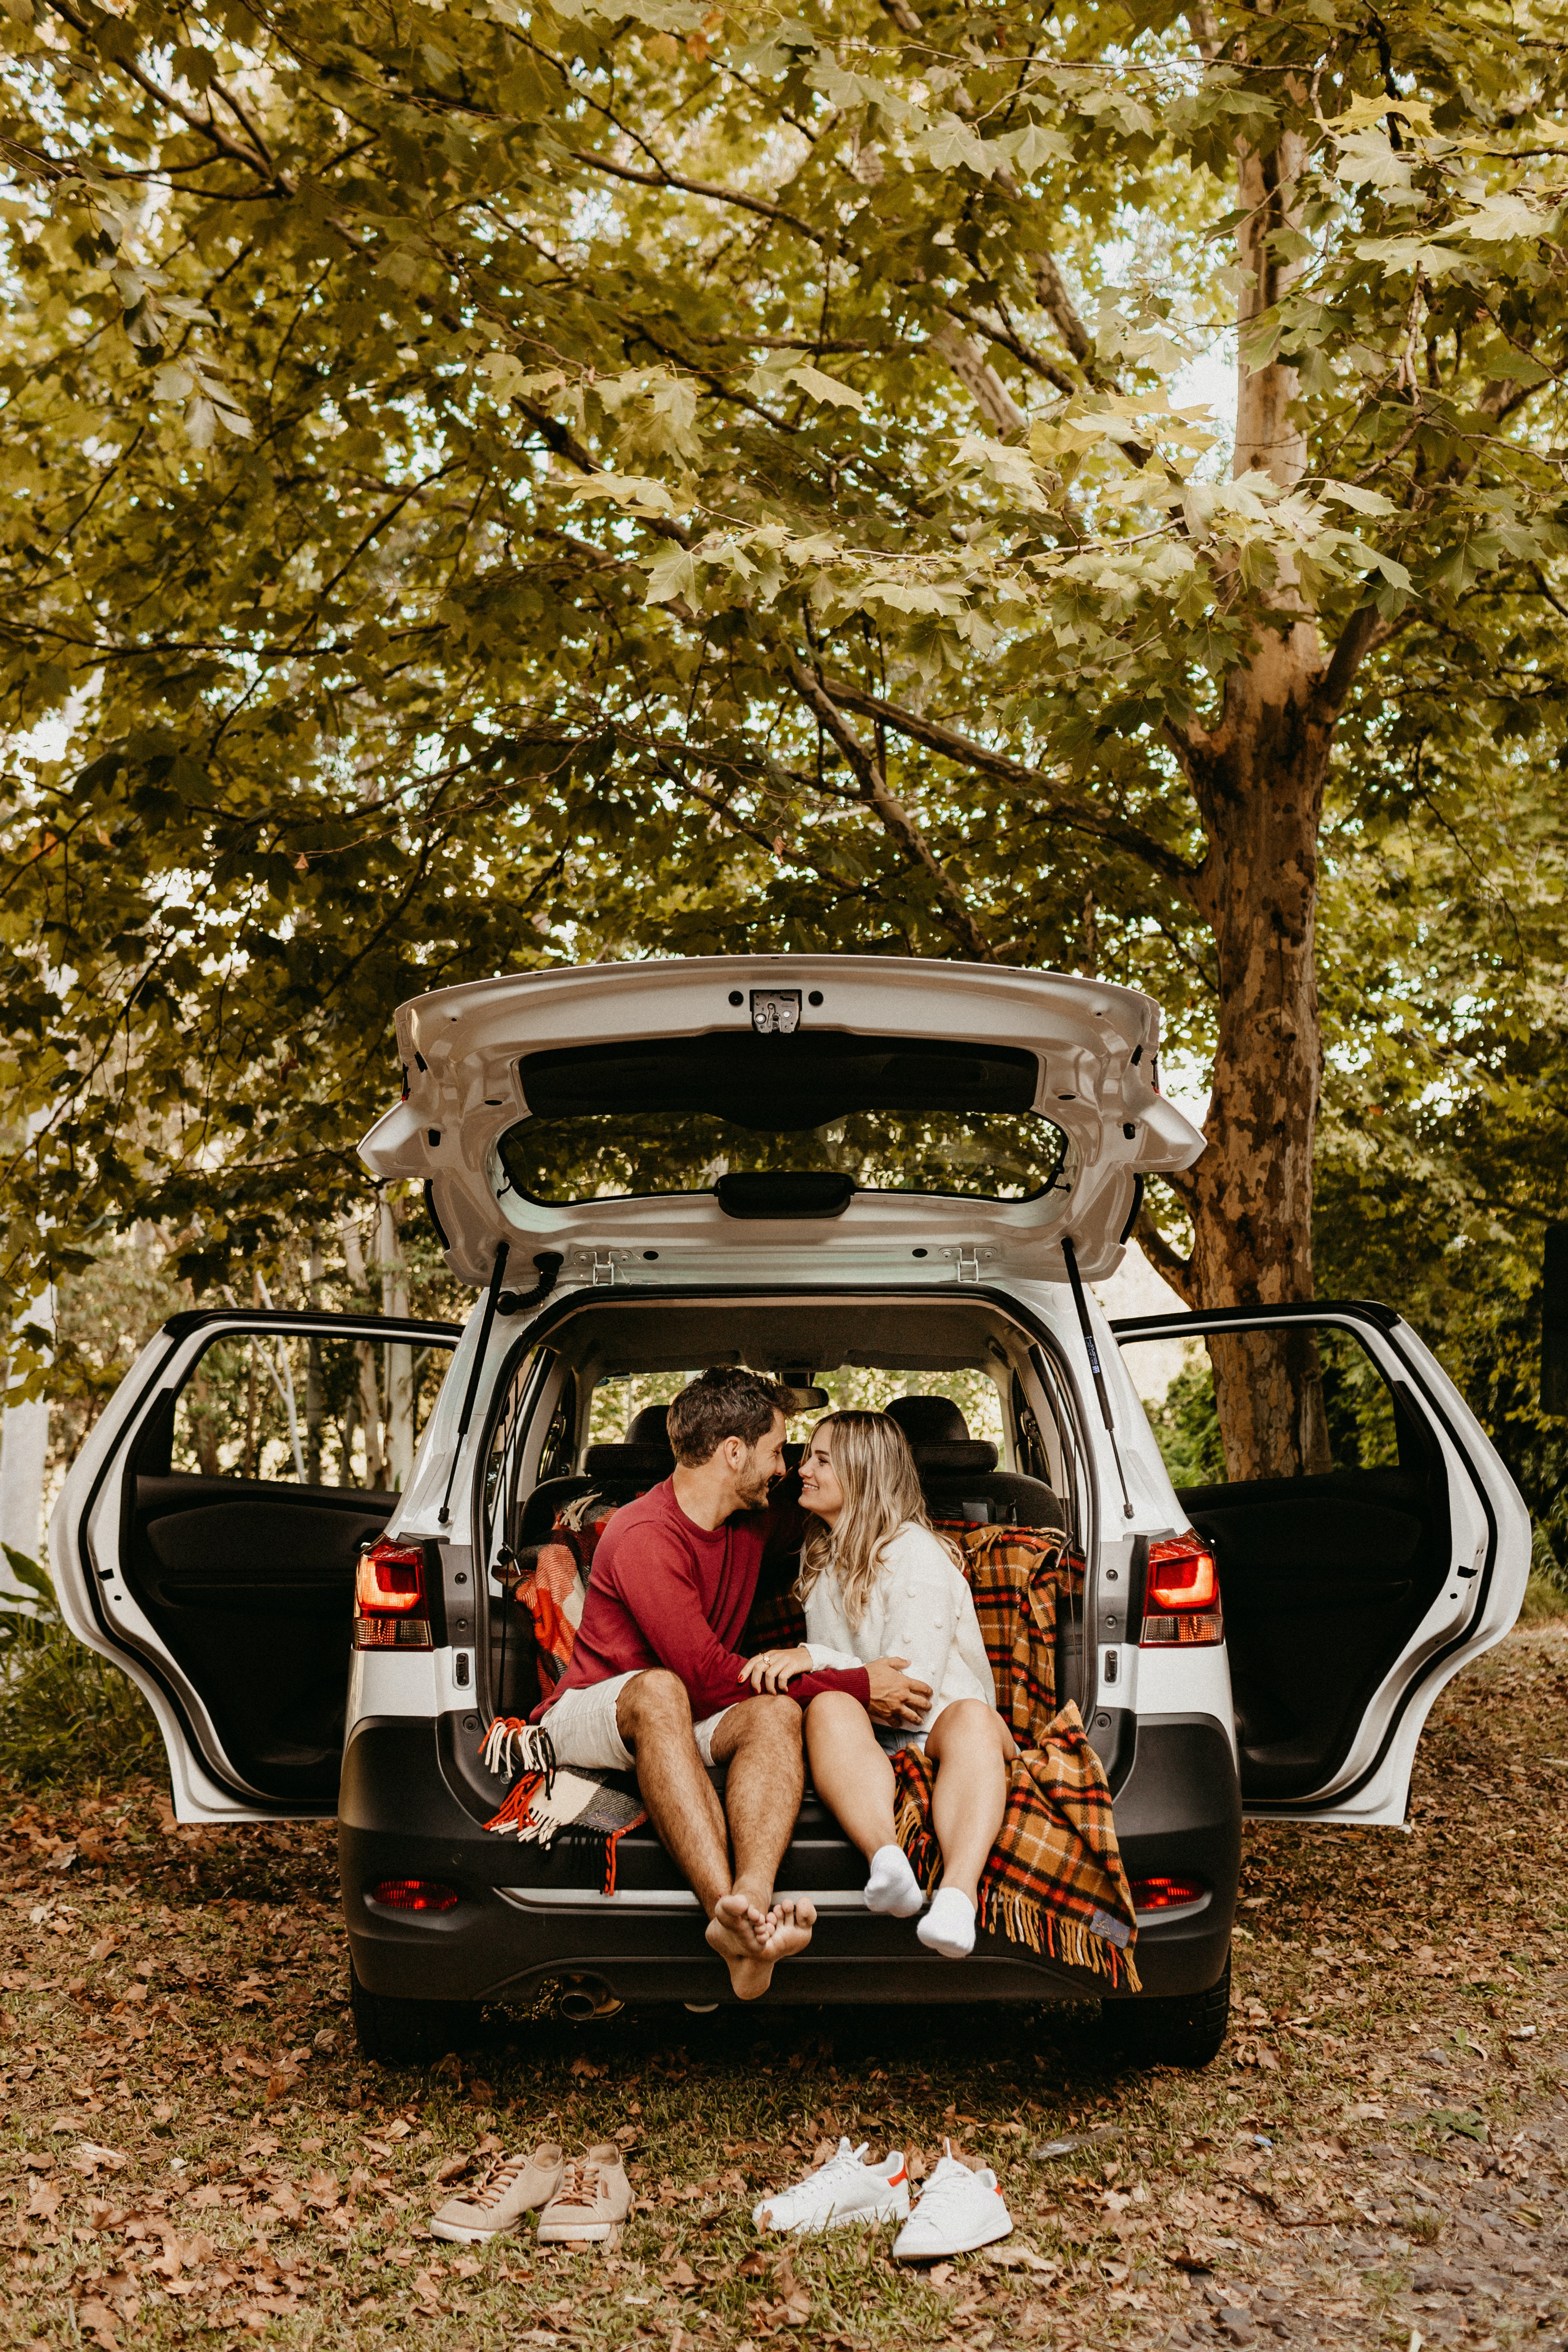 10 things to pack for road trip